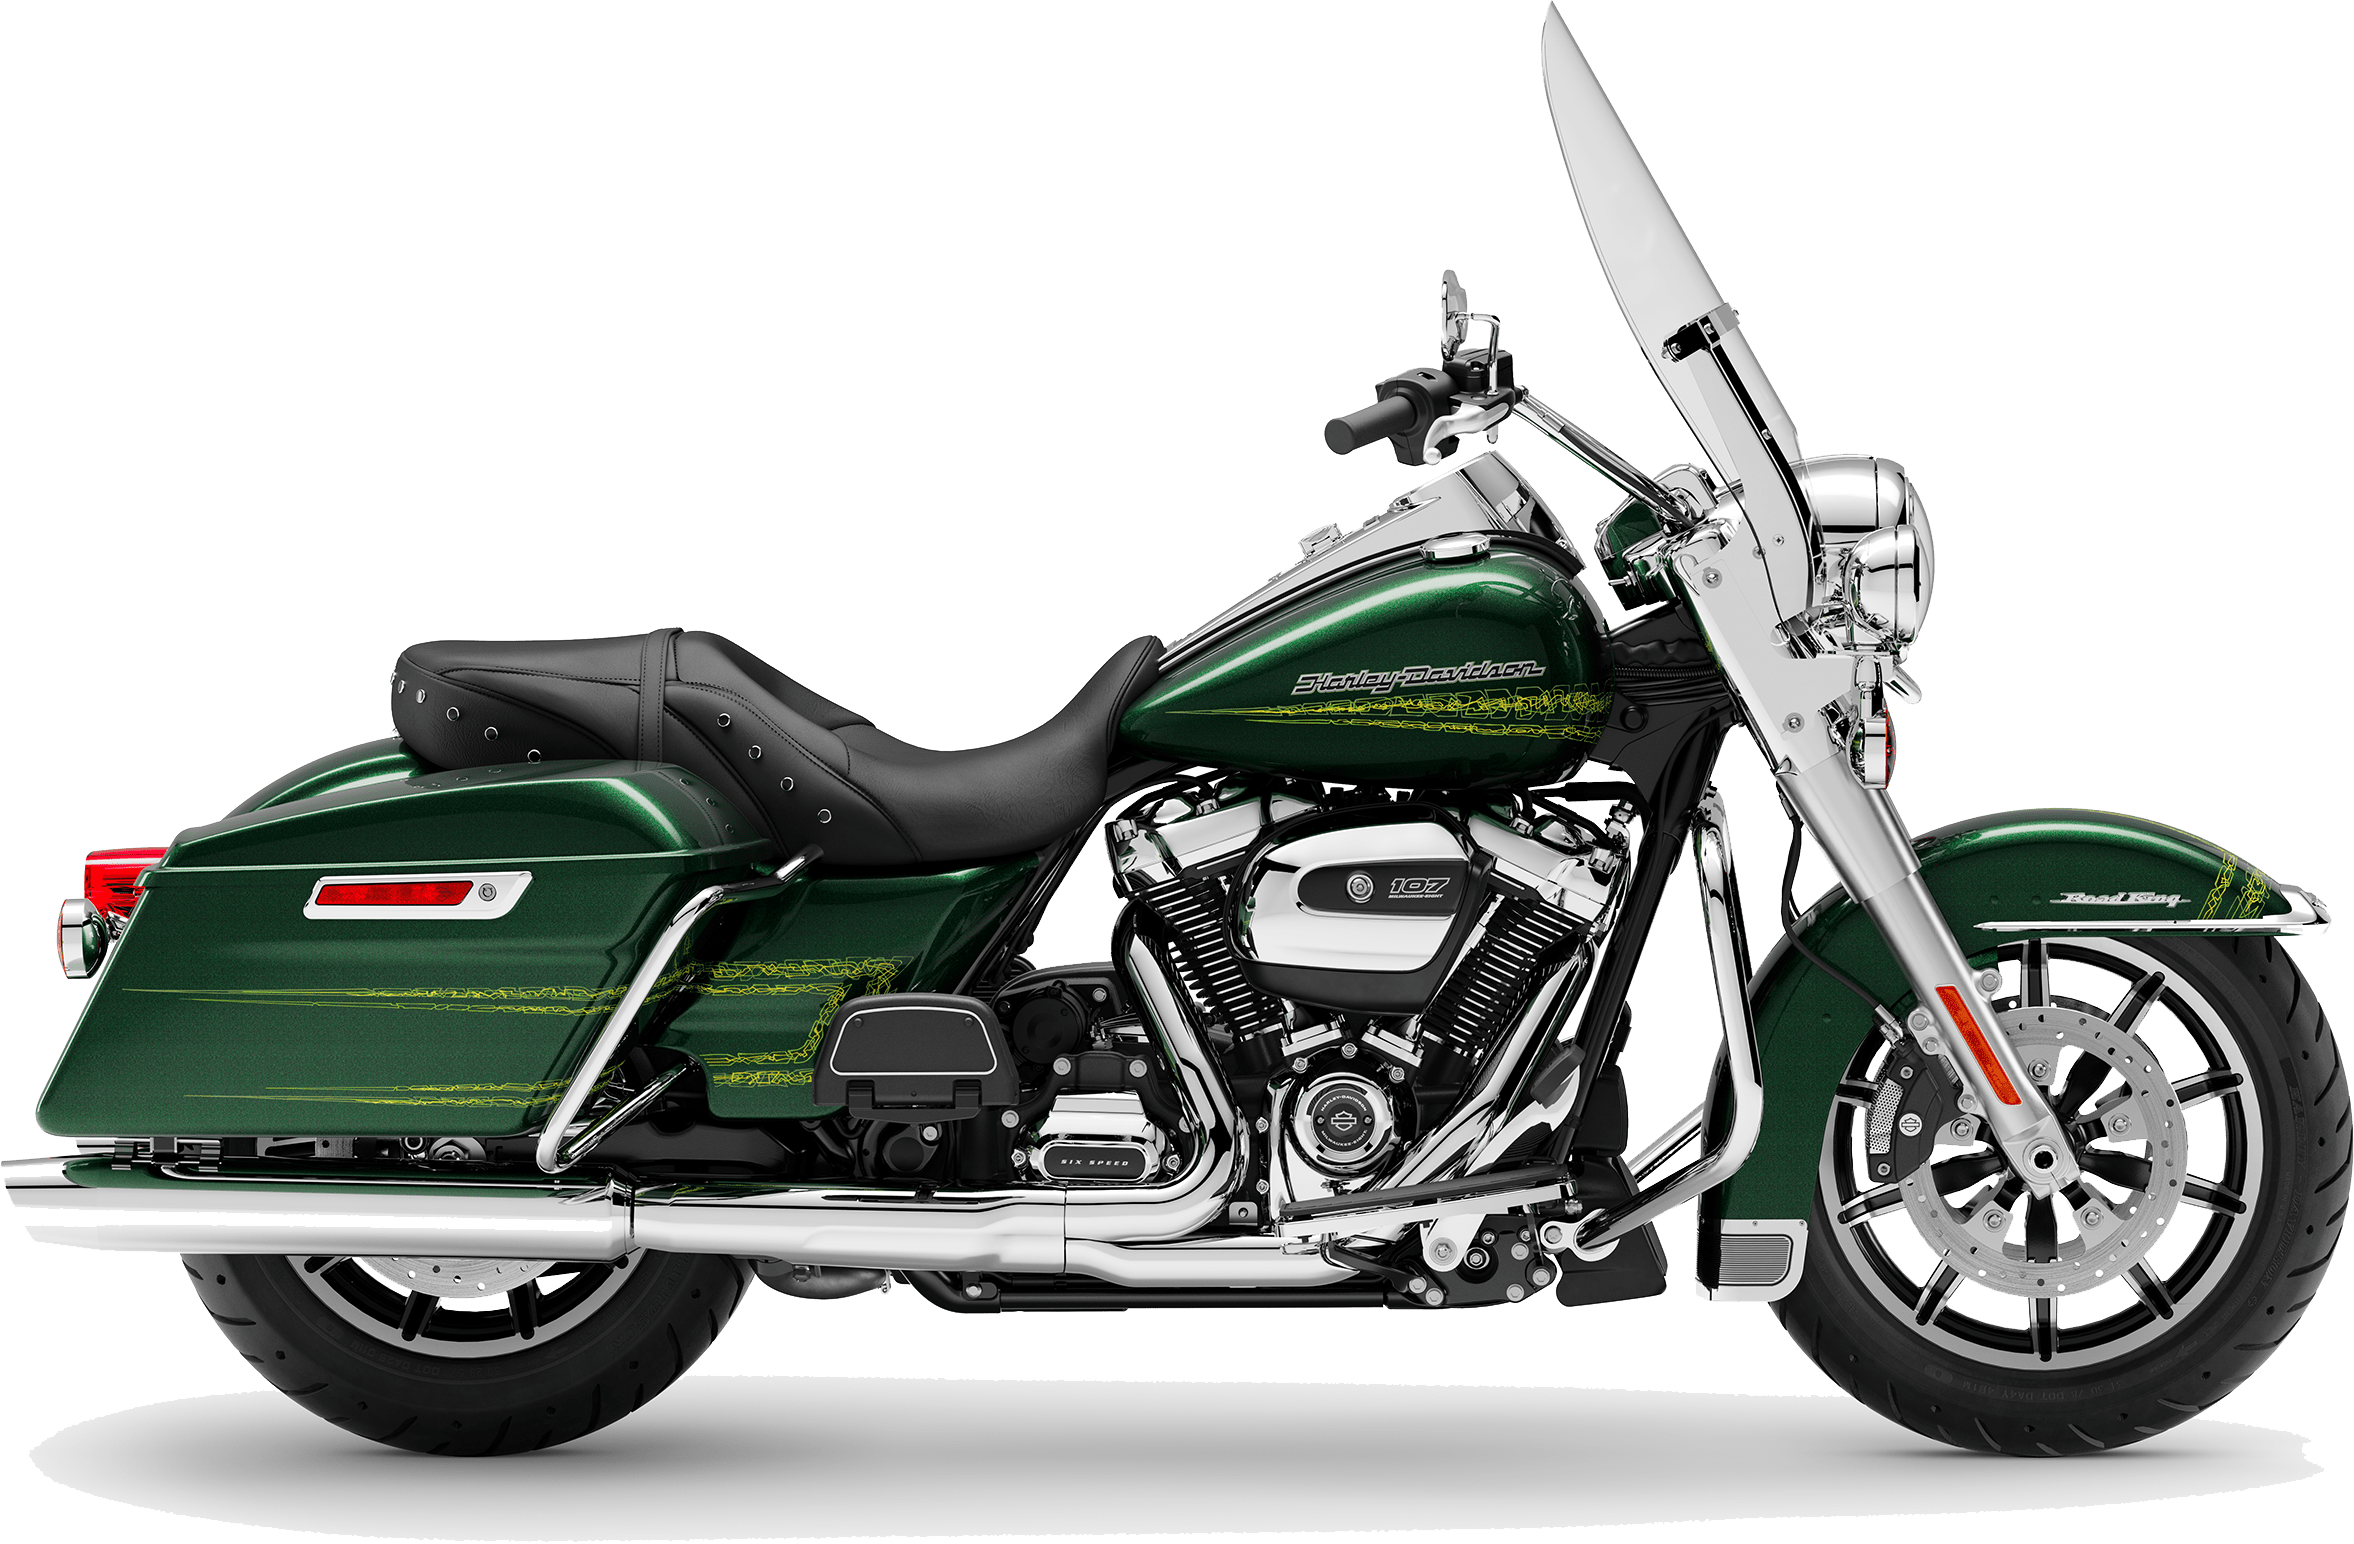 2019 Harley-Davidson H-D Touring Road King Kinetic Green